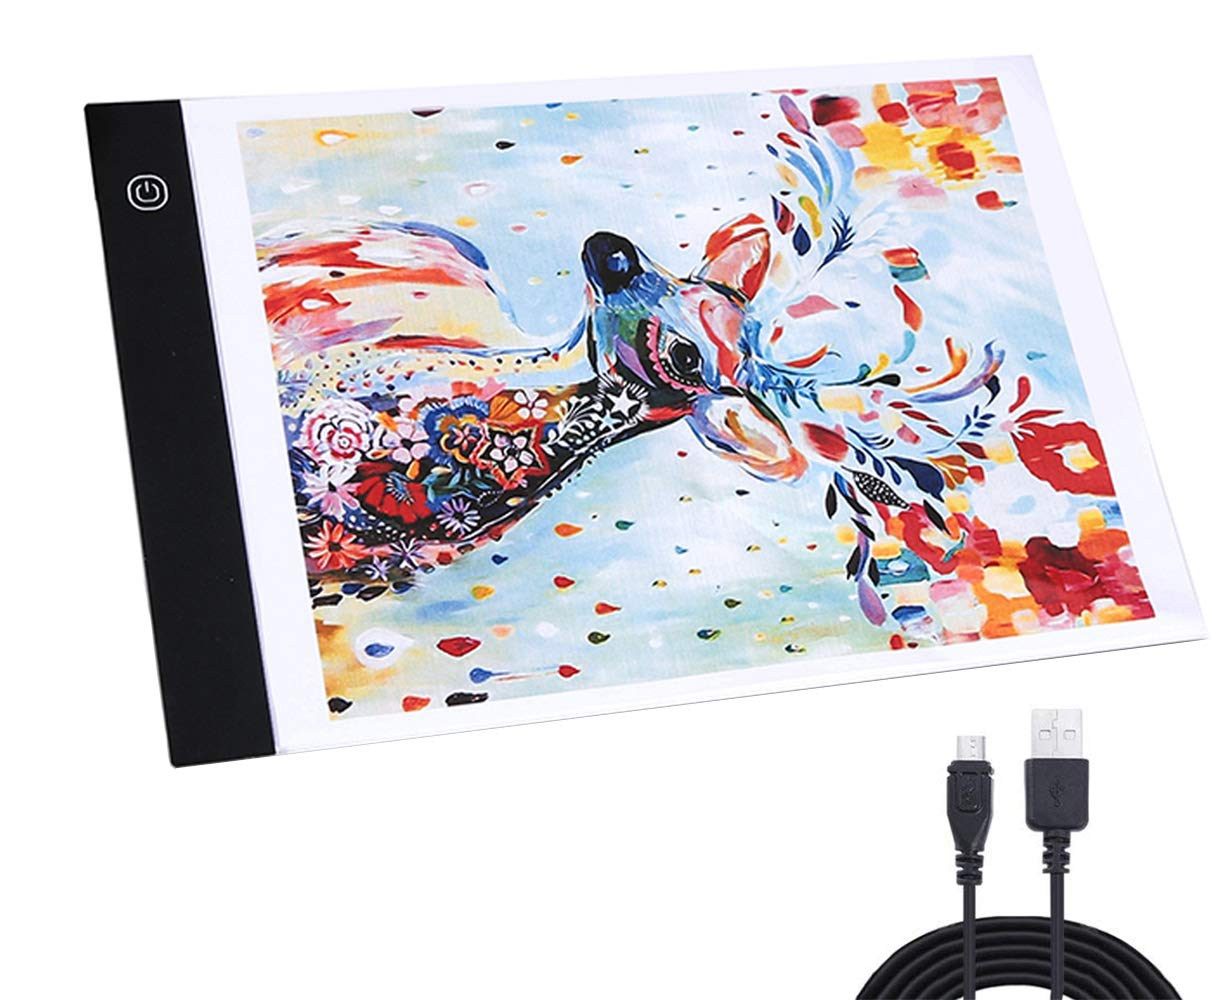 A4 LED Light Box Tracer USB Power Adjustable LED Light Tablet Board Pad for 5D DIY Diamond Painting by KSM UP